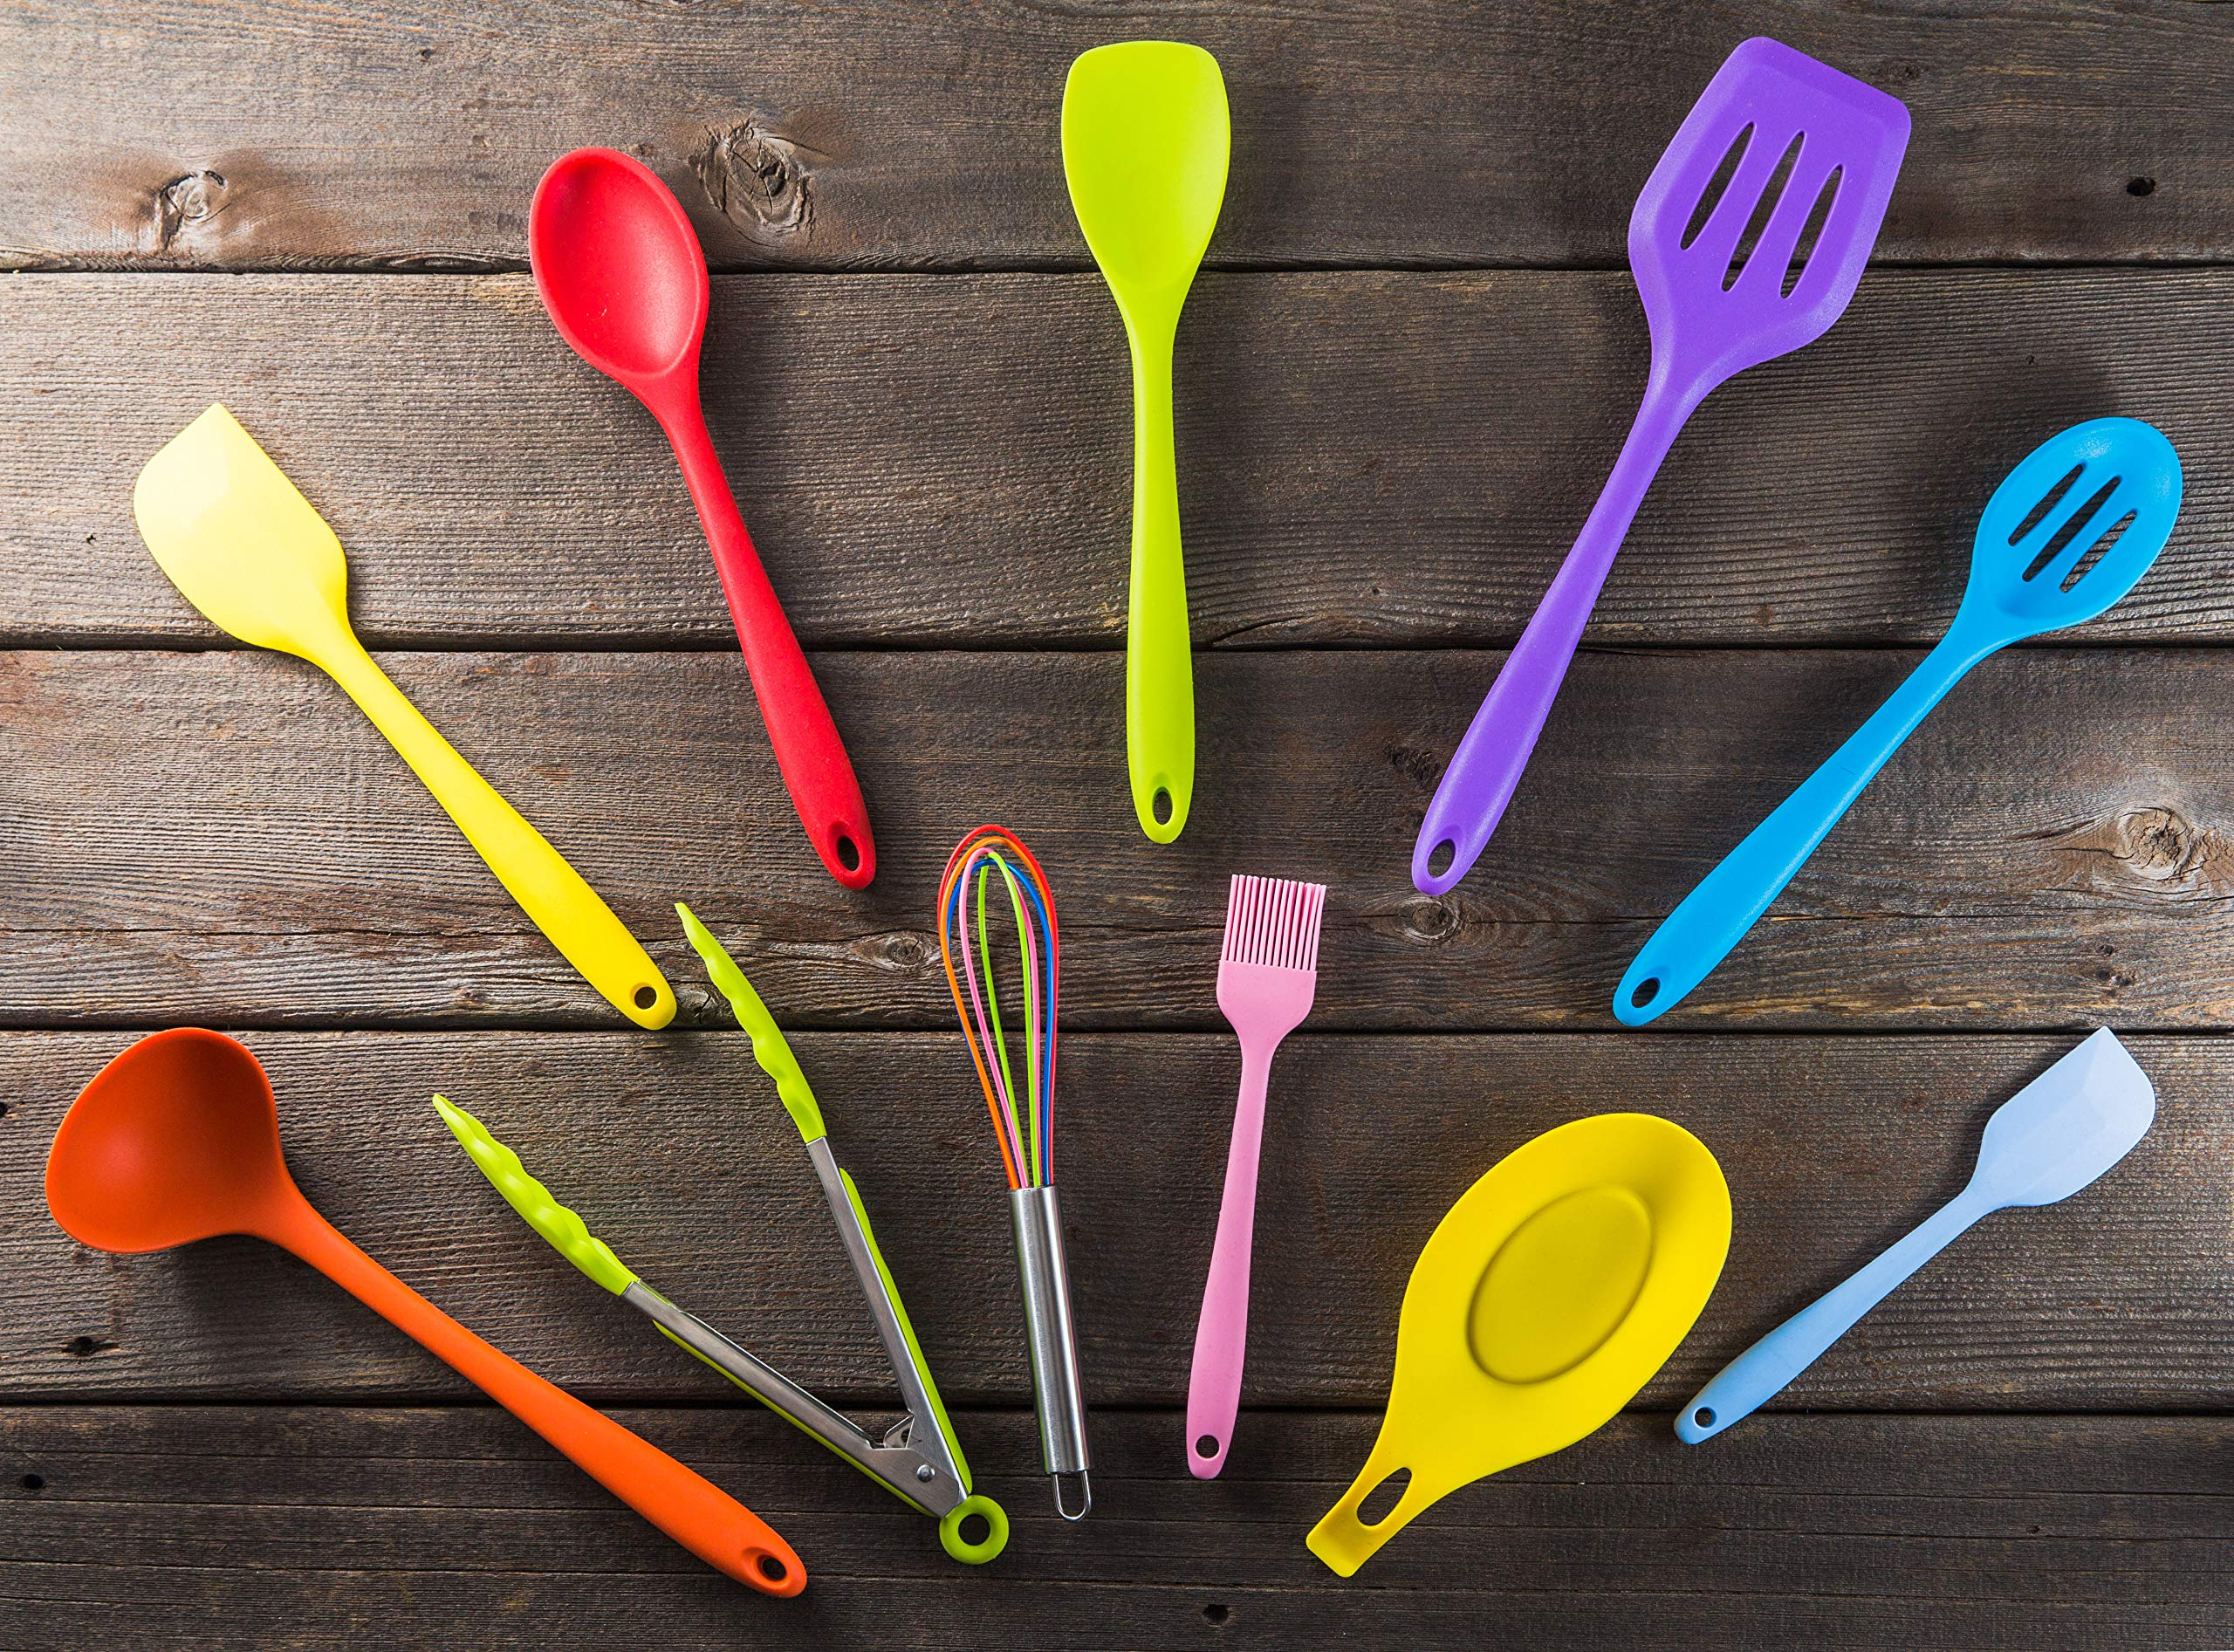 11pc Silicone Kitchen Utensil Set by CuisineFacets Colorful Cooking Utensils with Spatula, Serving Tools, Accessories and FREE Spoon Rest - Heat Resistant Spatulas and Spoons for Non-Stick Cookware 3 ✅11PC incl. FREE SPOON REST: Imagine how many colorful food creations you can now unleash all at once, because your utensil set includes everything! Silicone Wisk, Pastry Brush, 2x Spatulas, Slotted Spoon, Salad Spoon, Food Tong, All-Purpose Spoon, large Ladle, Slotted Turner, and BONUS Spoon Rest. ✅HEAT RESISTANT & EASY TO CLEAN: From the Rainbow Whisk to the Pink Pastry Brush, just pop your silicone kitchen utensils in the dishwasher to clean. Everything is made from FDA Compliant Food Grade Silicone and can withstand temperatures up to 446°F... like steaming hot pasta, pumpkin soup or pancakes. ✅WHAT'S YOUR FAVE? If you're like most people, there are always 1 or 2 kitchen tools you love the most. And if you're like us, it could even be because of color. Either way, our Cheery Utensils Set from CuisineFacets gives you the best of both - your favorite non-stick kitchen utensils, in your favorite colors too.